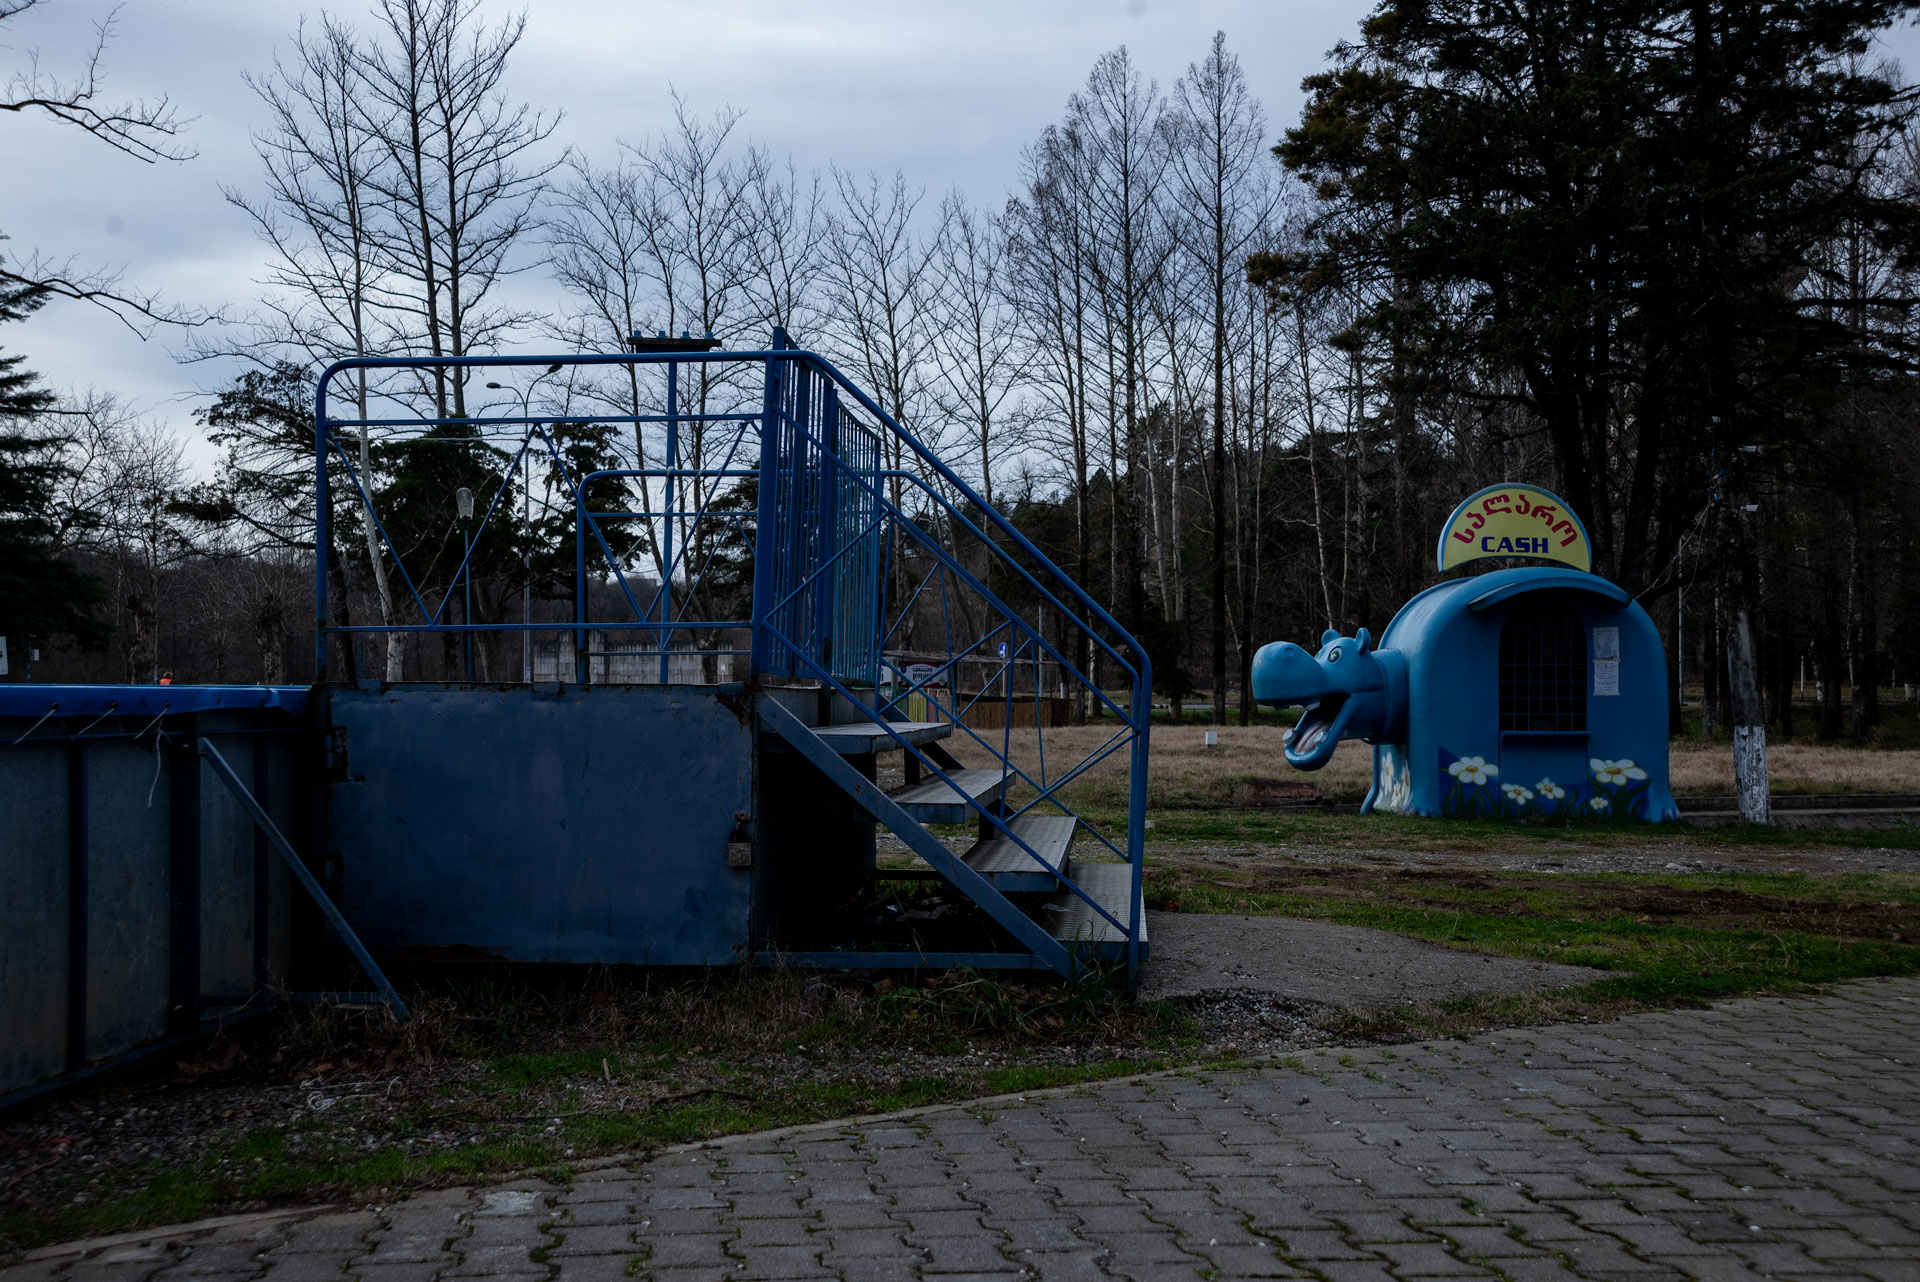 An old playground in the middle of the park.